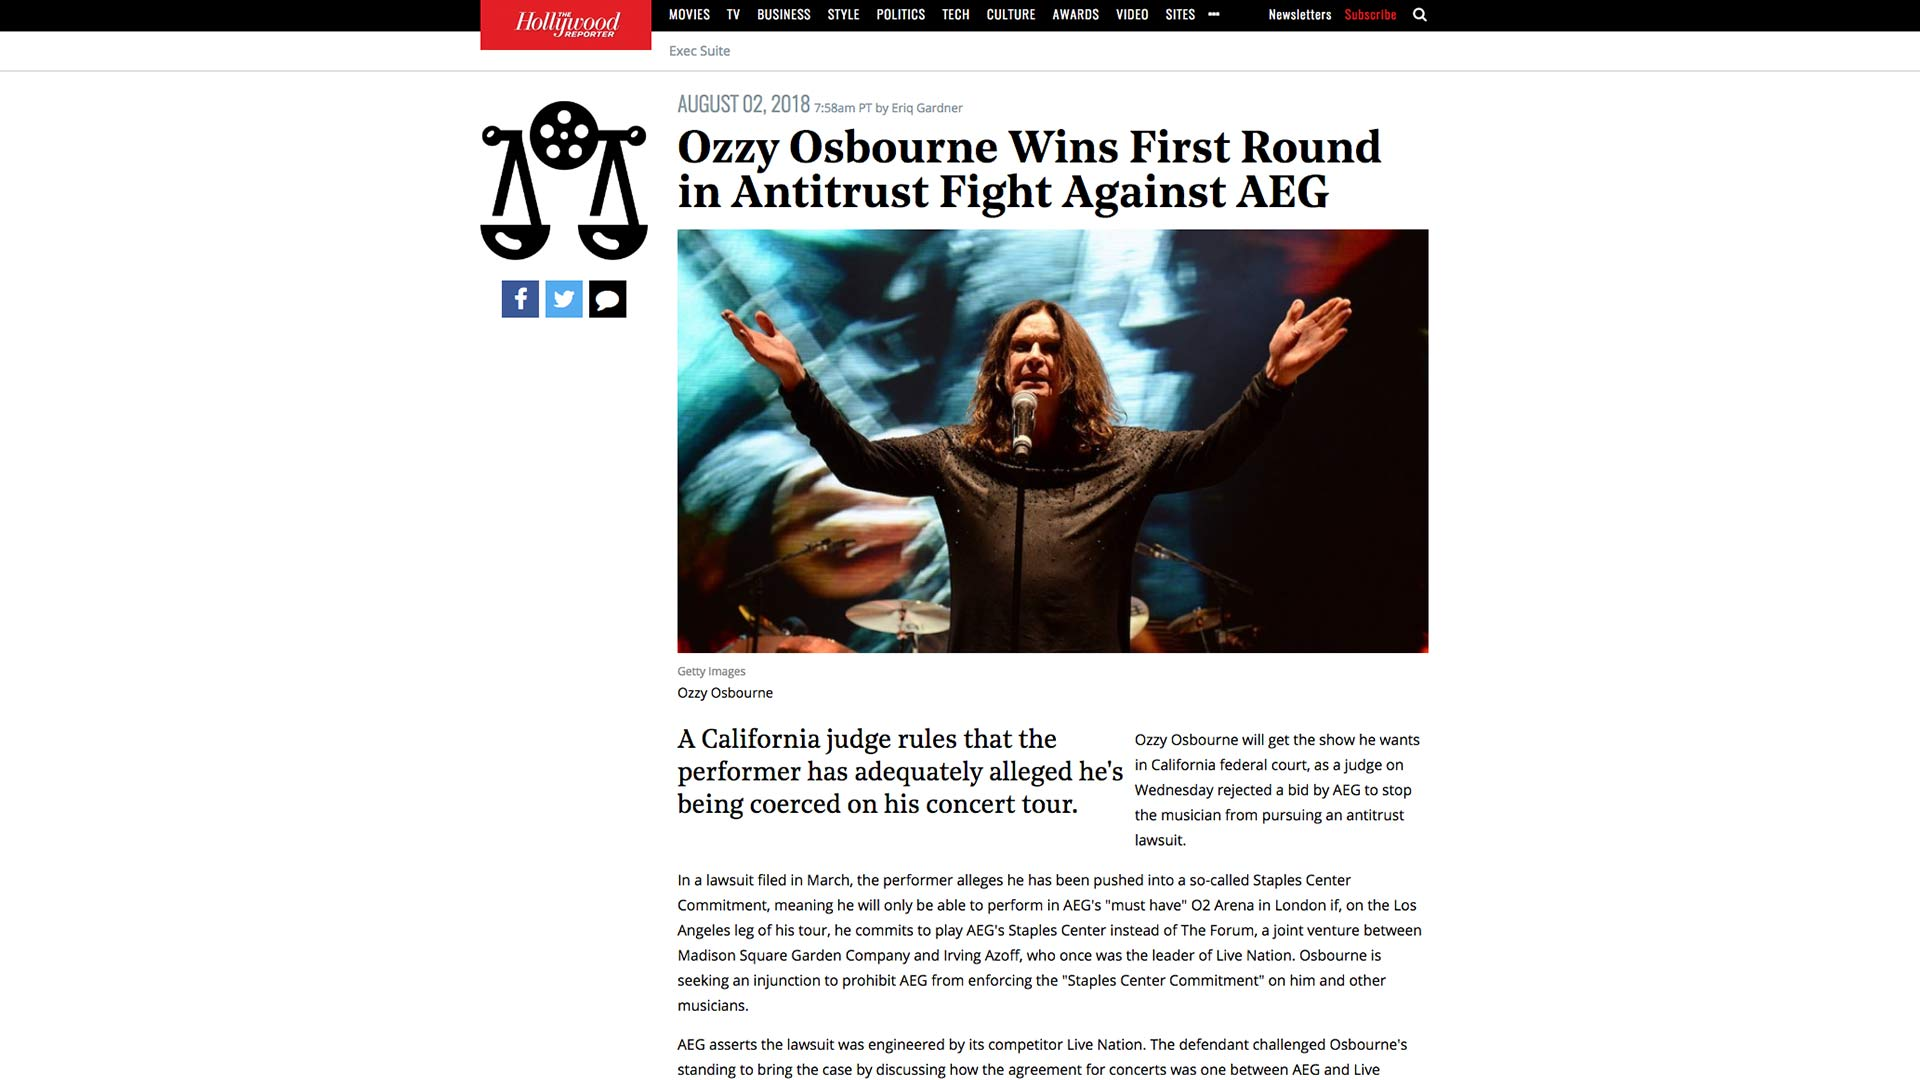 Fairness Rocks News Ozzy Osbourne Wins First Round in Antitrust Fight Against AEG